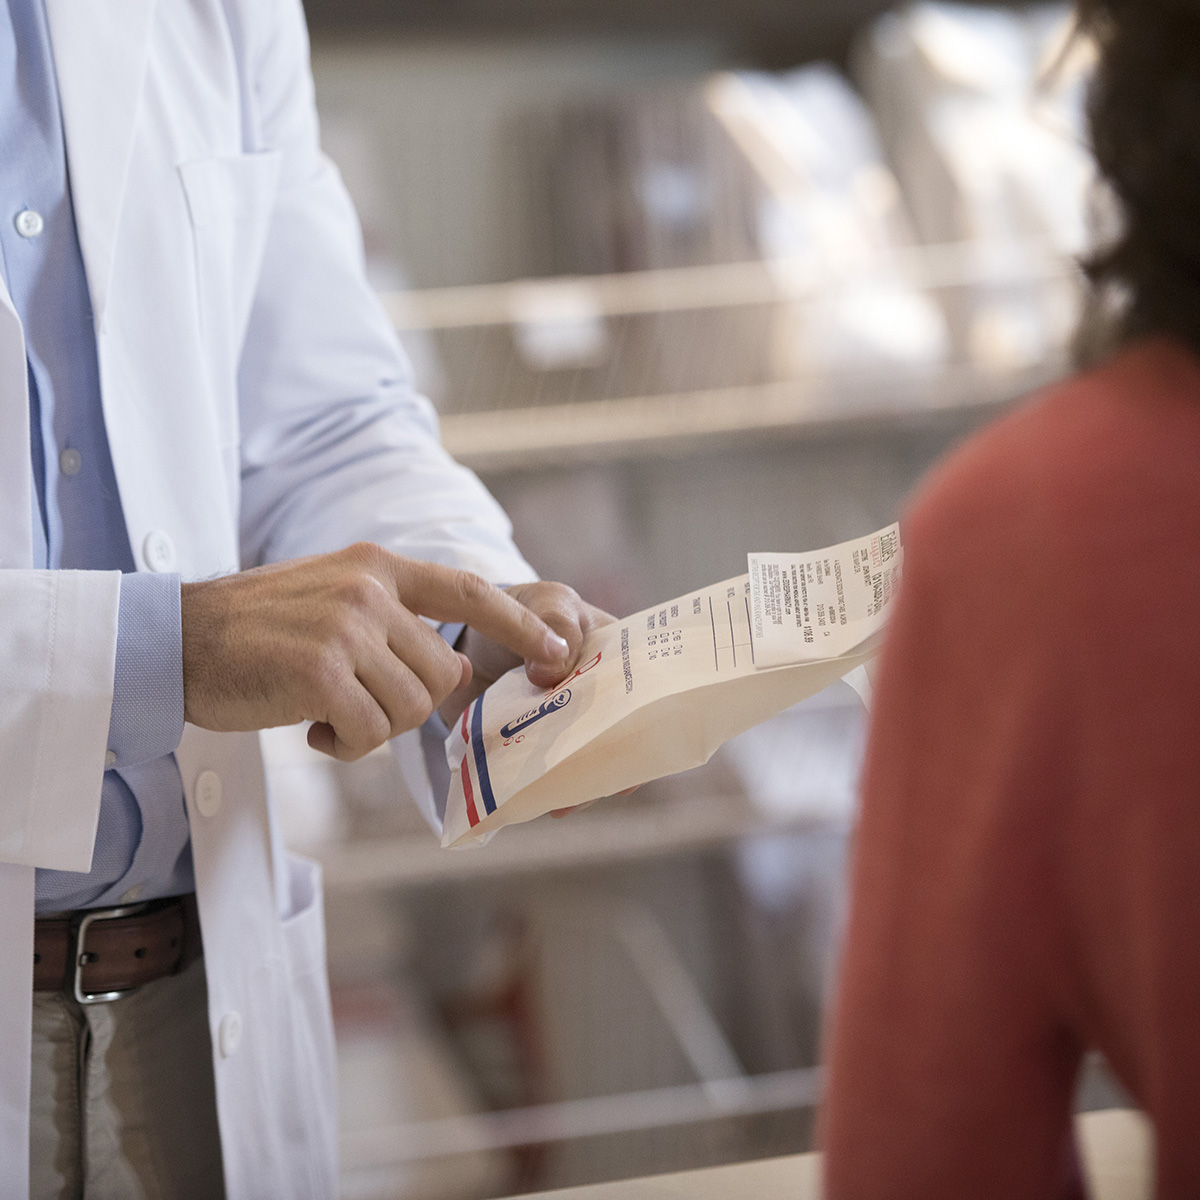 A close up on a pharmacist holding a prescription pointing at the directions.